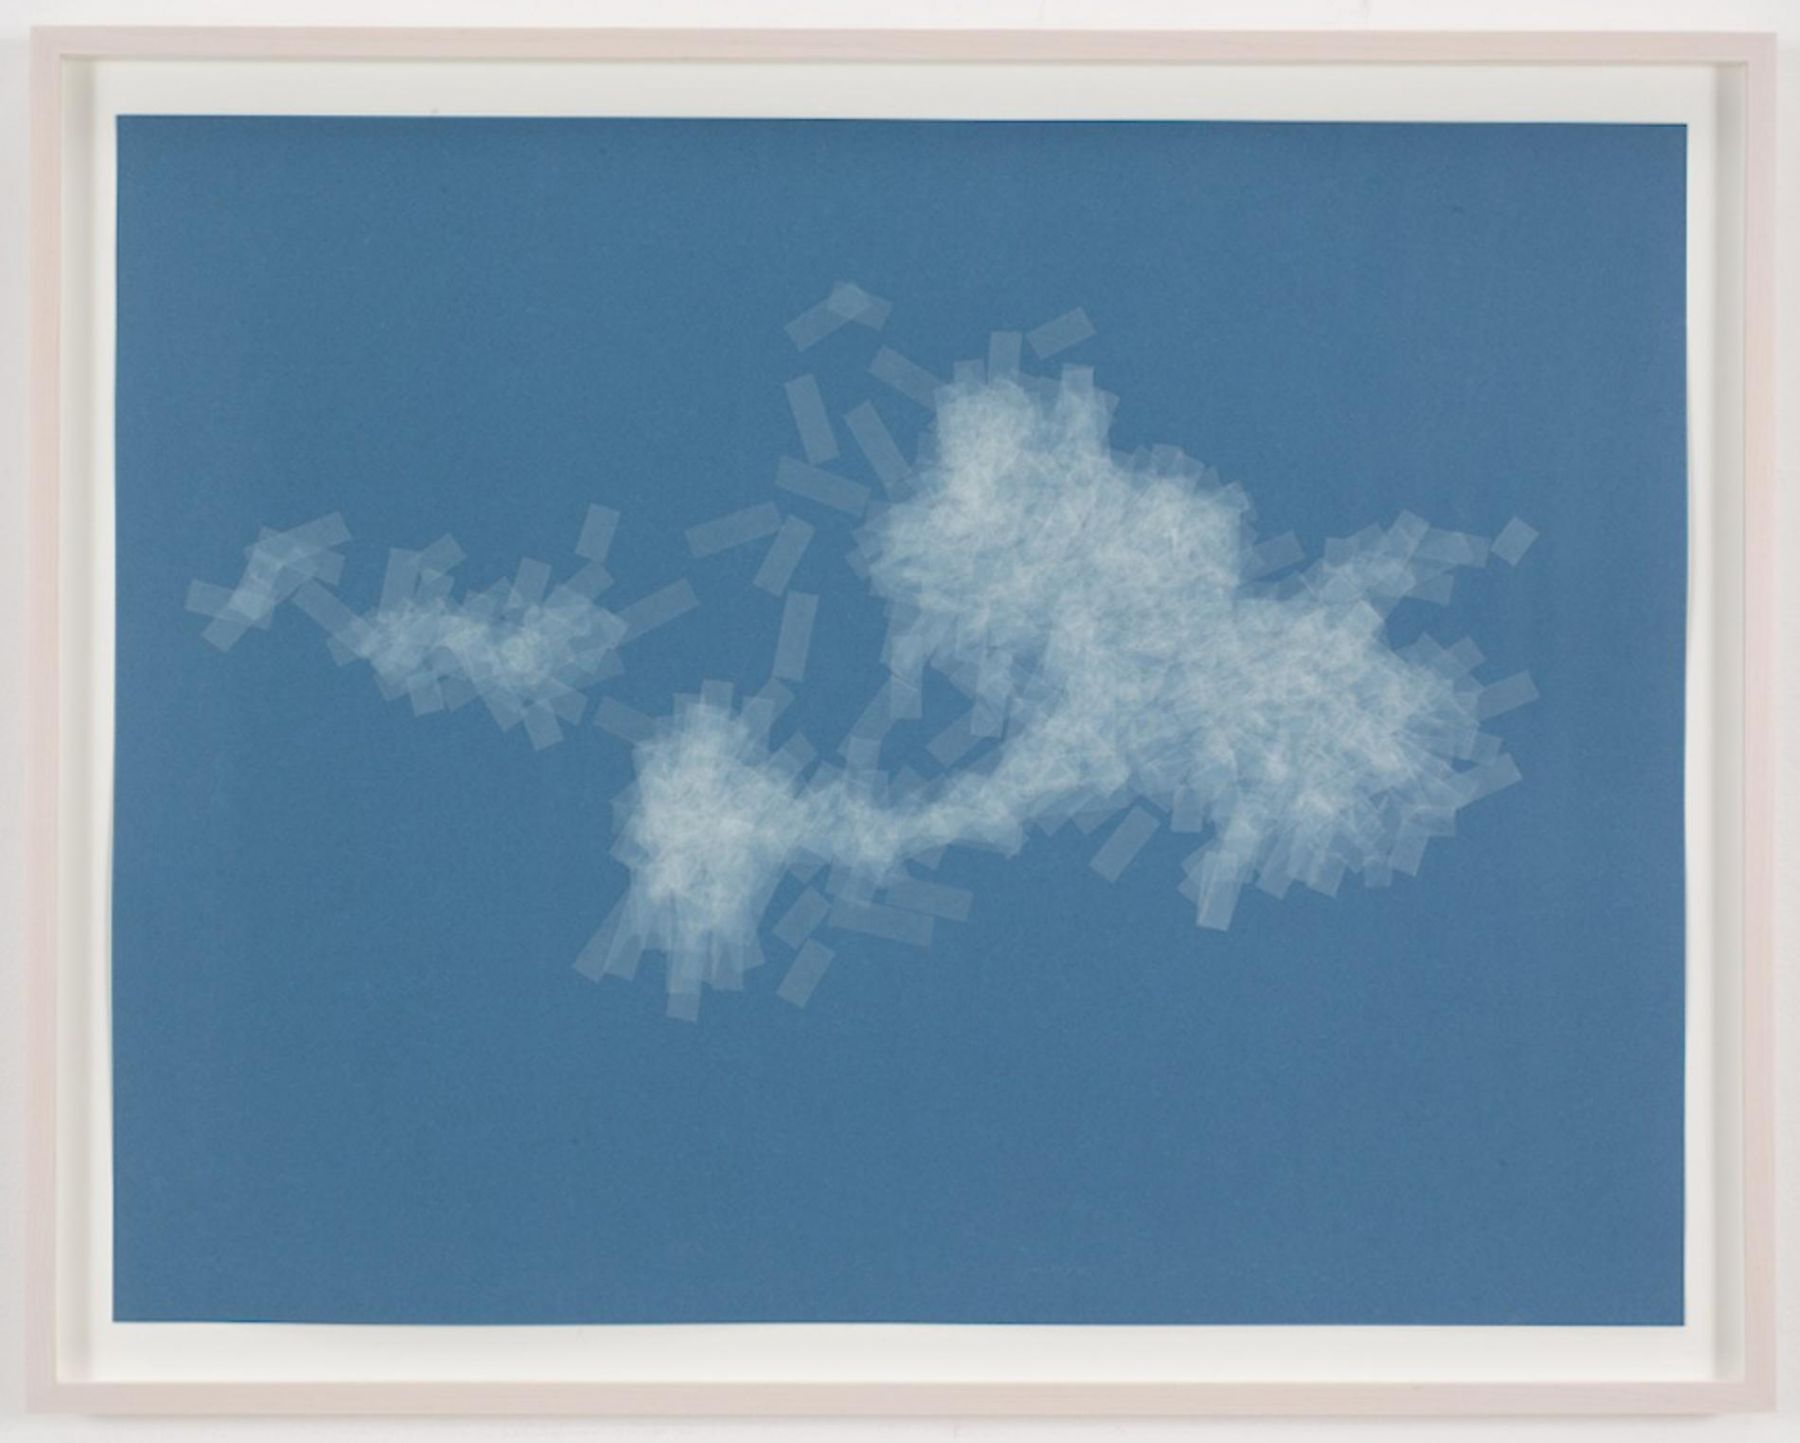 , SPENCER FINCH, Cloud (cumulus humilis, Vermont, 2), 2014, Scotch tape on paper, Sheet: 19 3/4 x 25 1/2 in., Framed: 21 5/8 x 27 1/2 in.